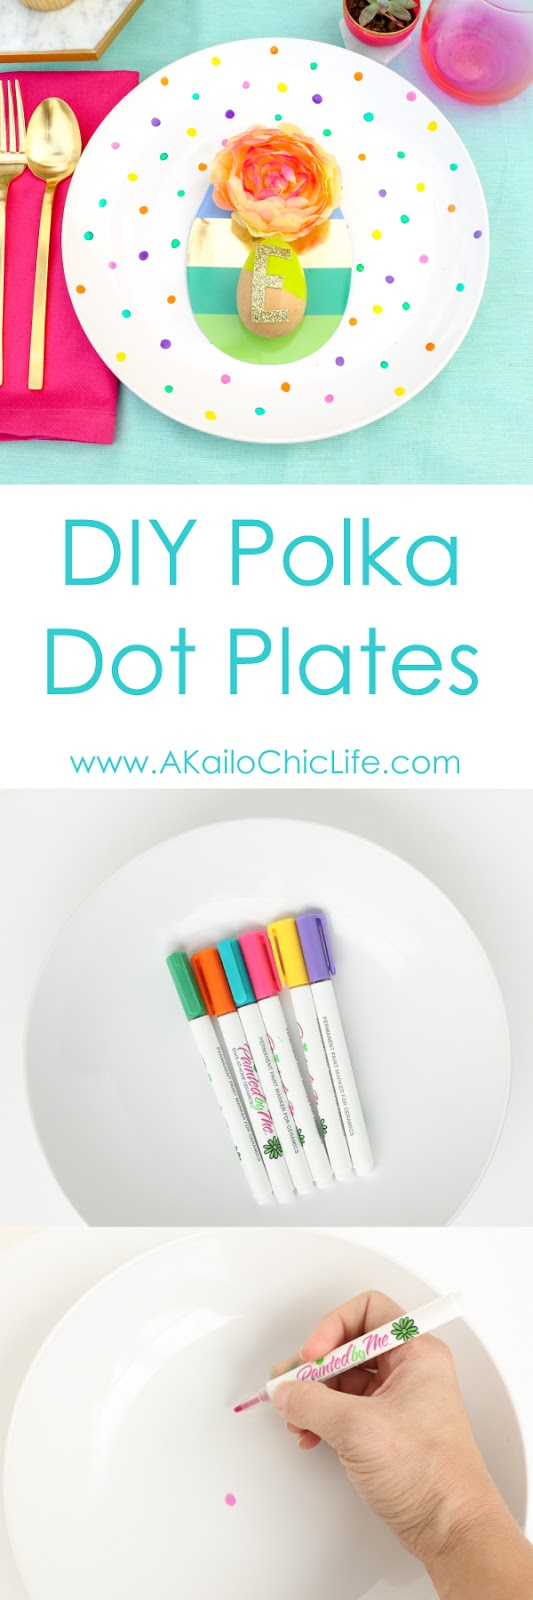 Easy DIY Craft - Polka Dot Plates - kid craft - teen craft